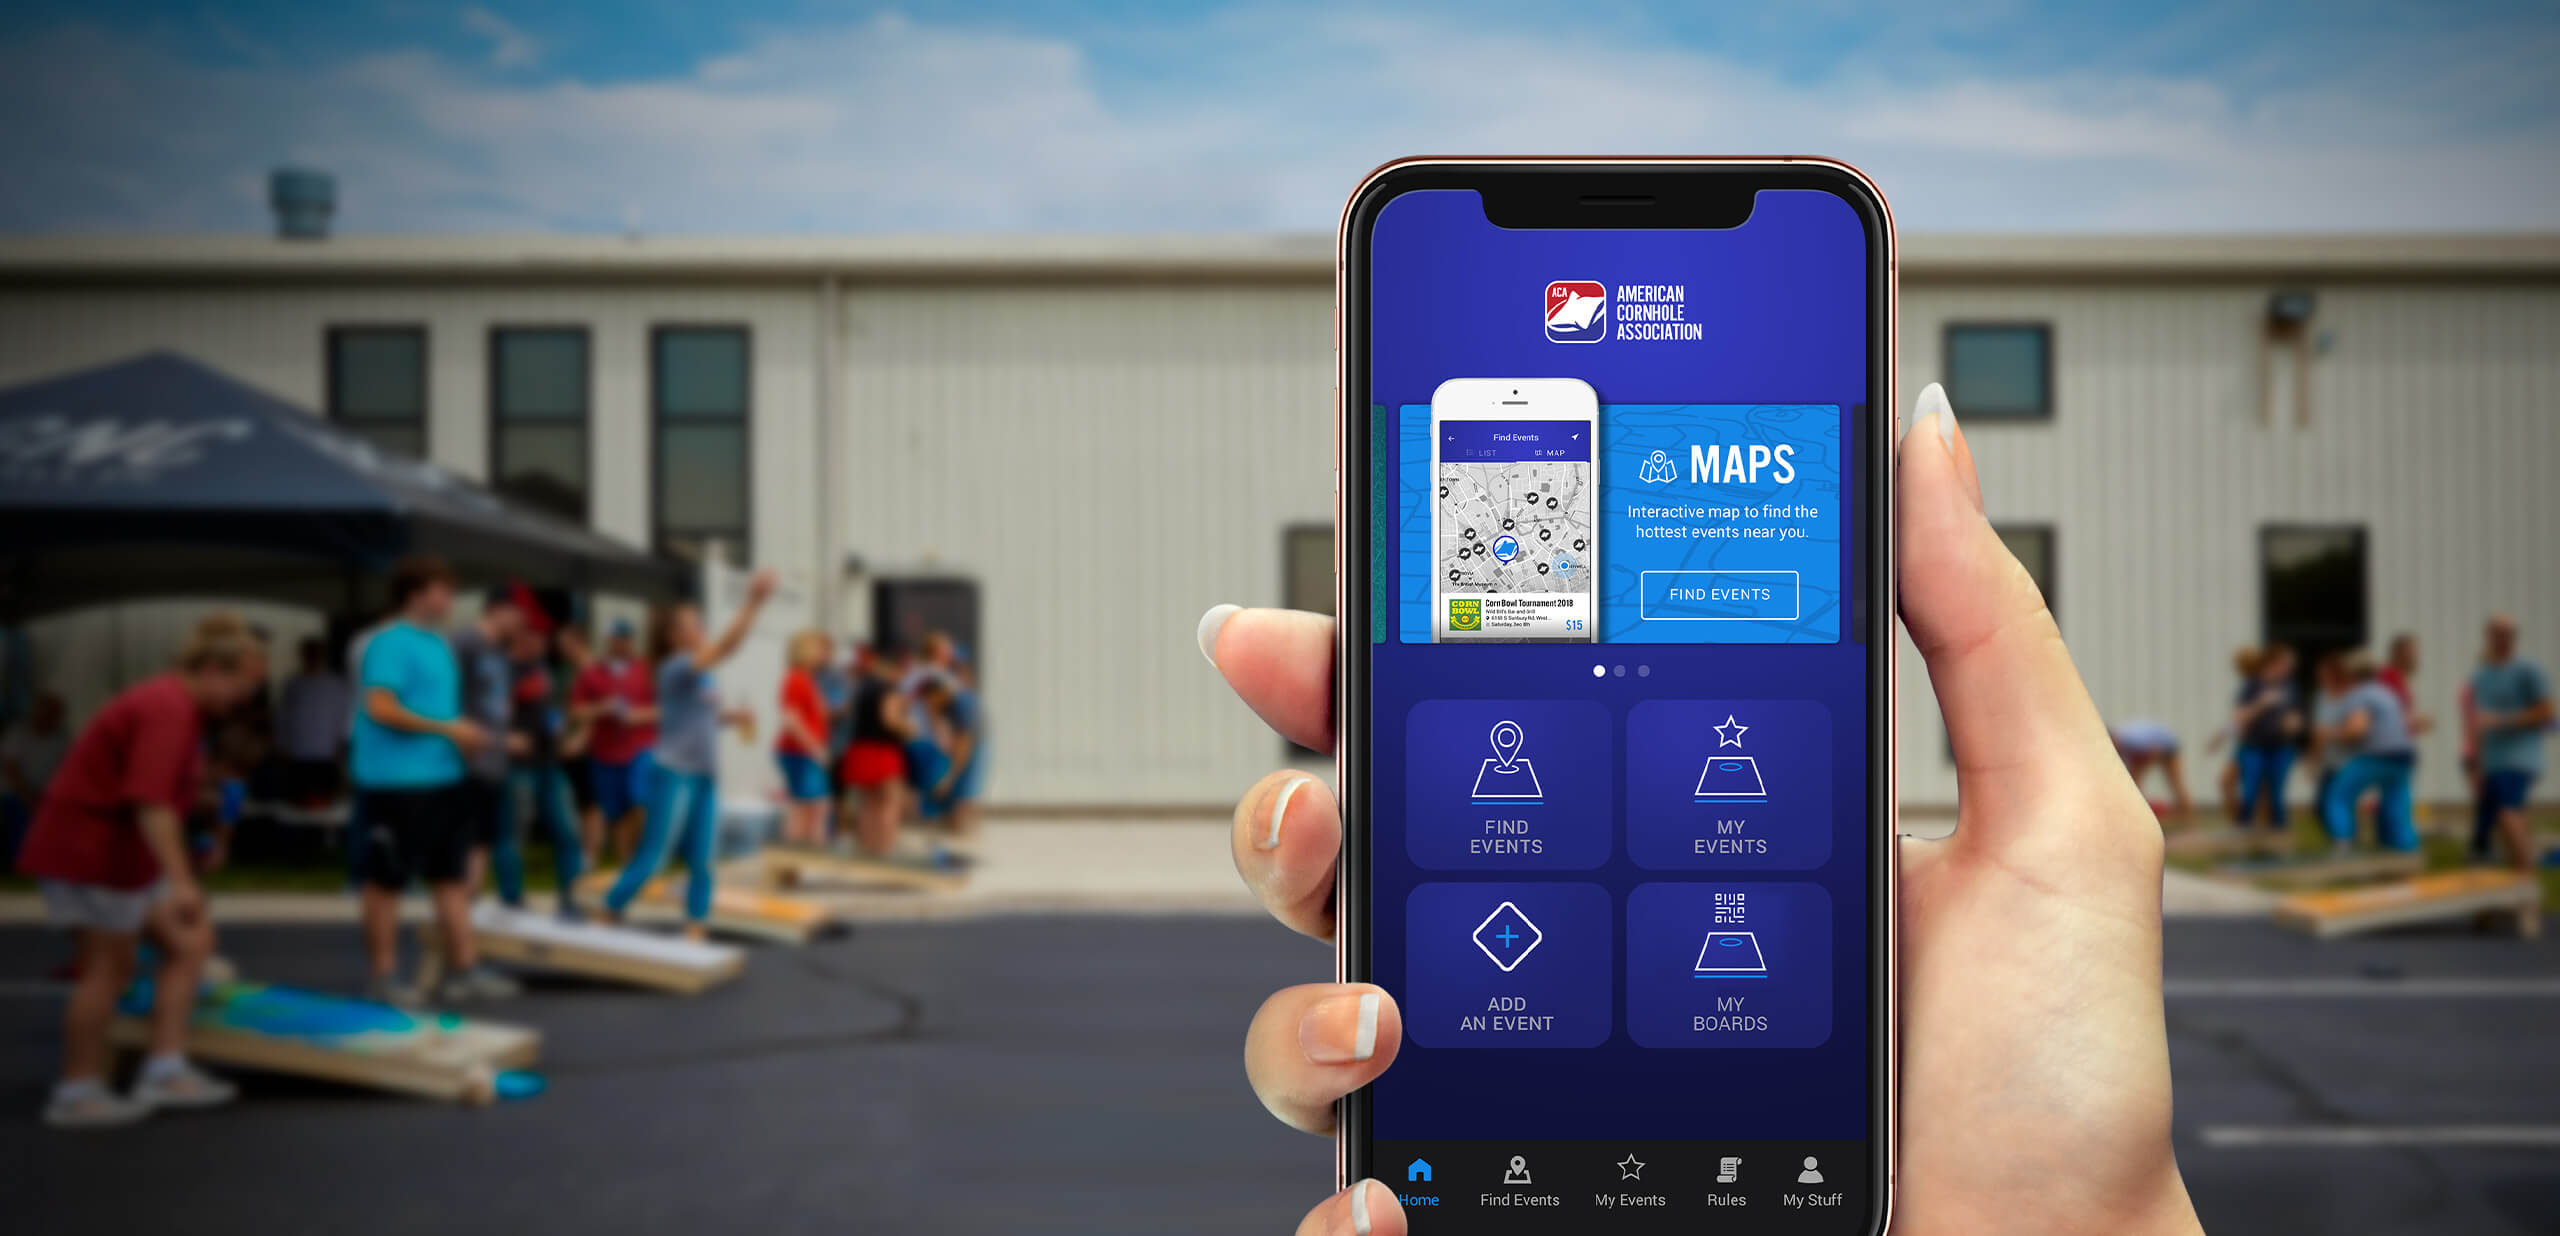 American Cornhole Association Mobile App